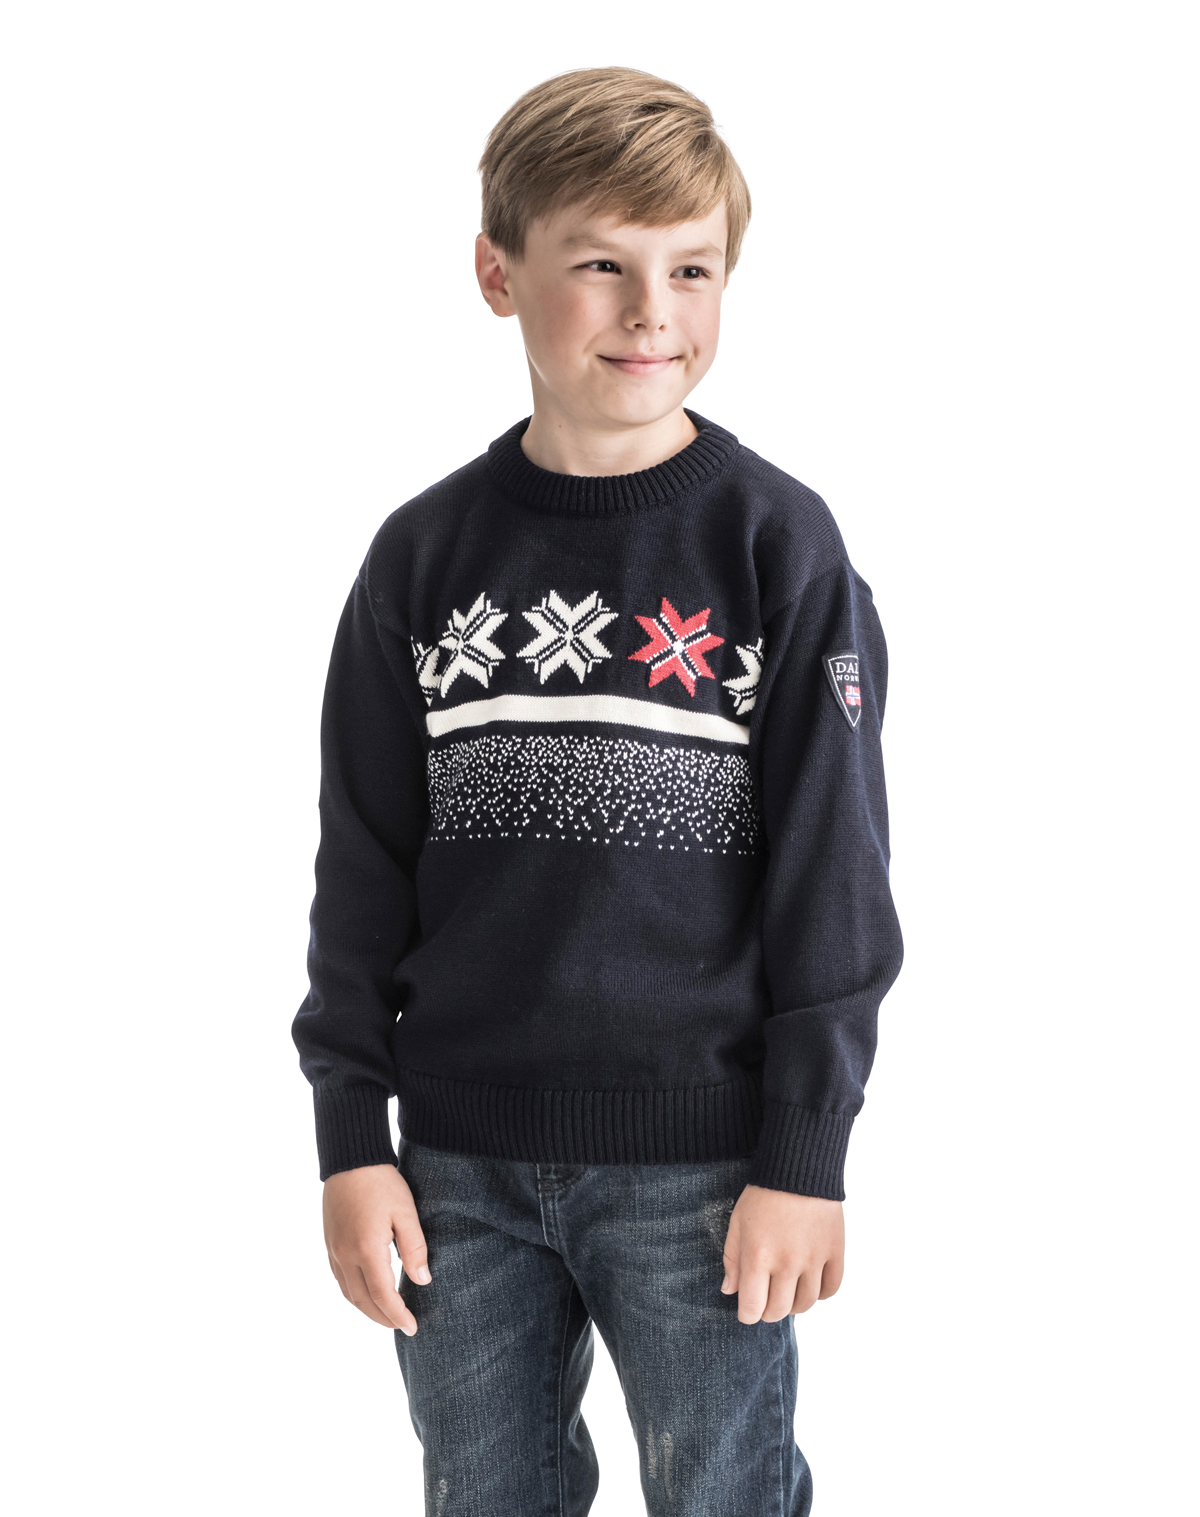 Olympic Passion Kids Sweater (1)